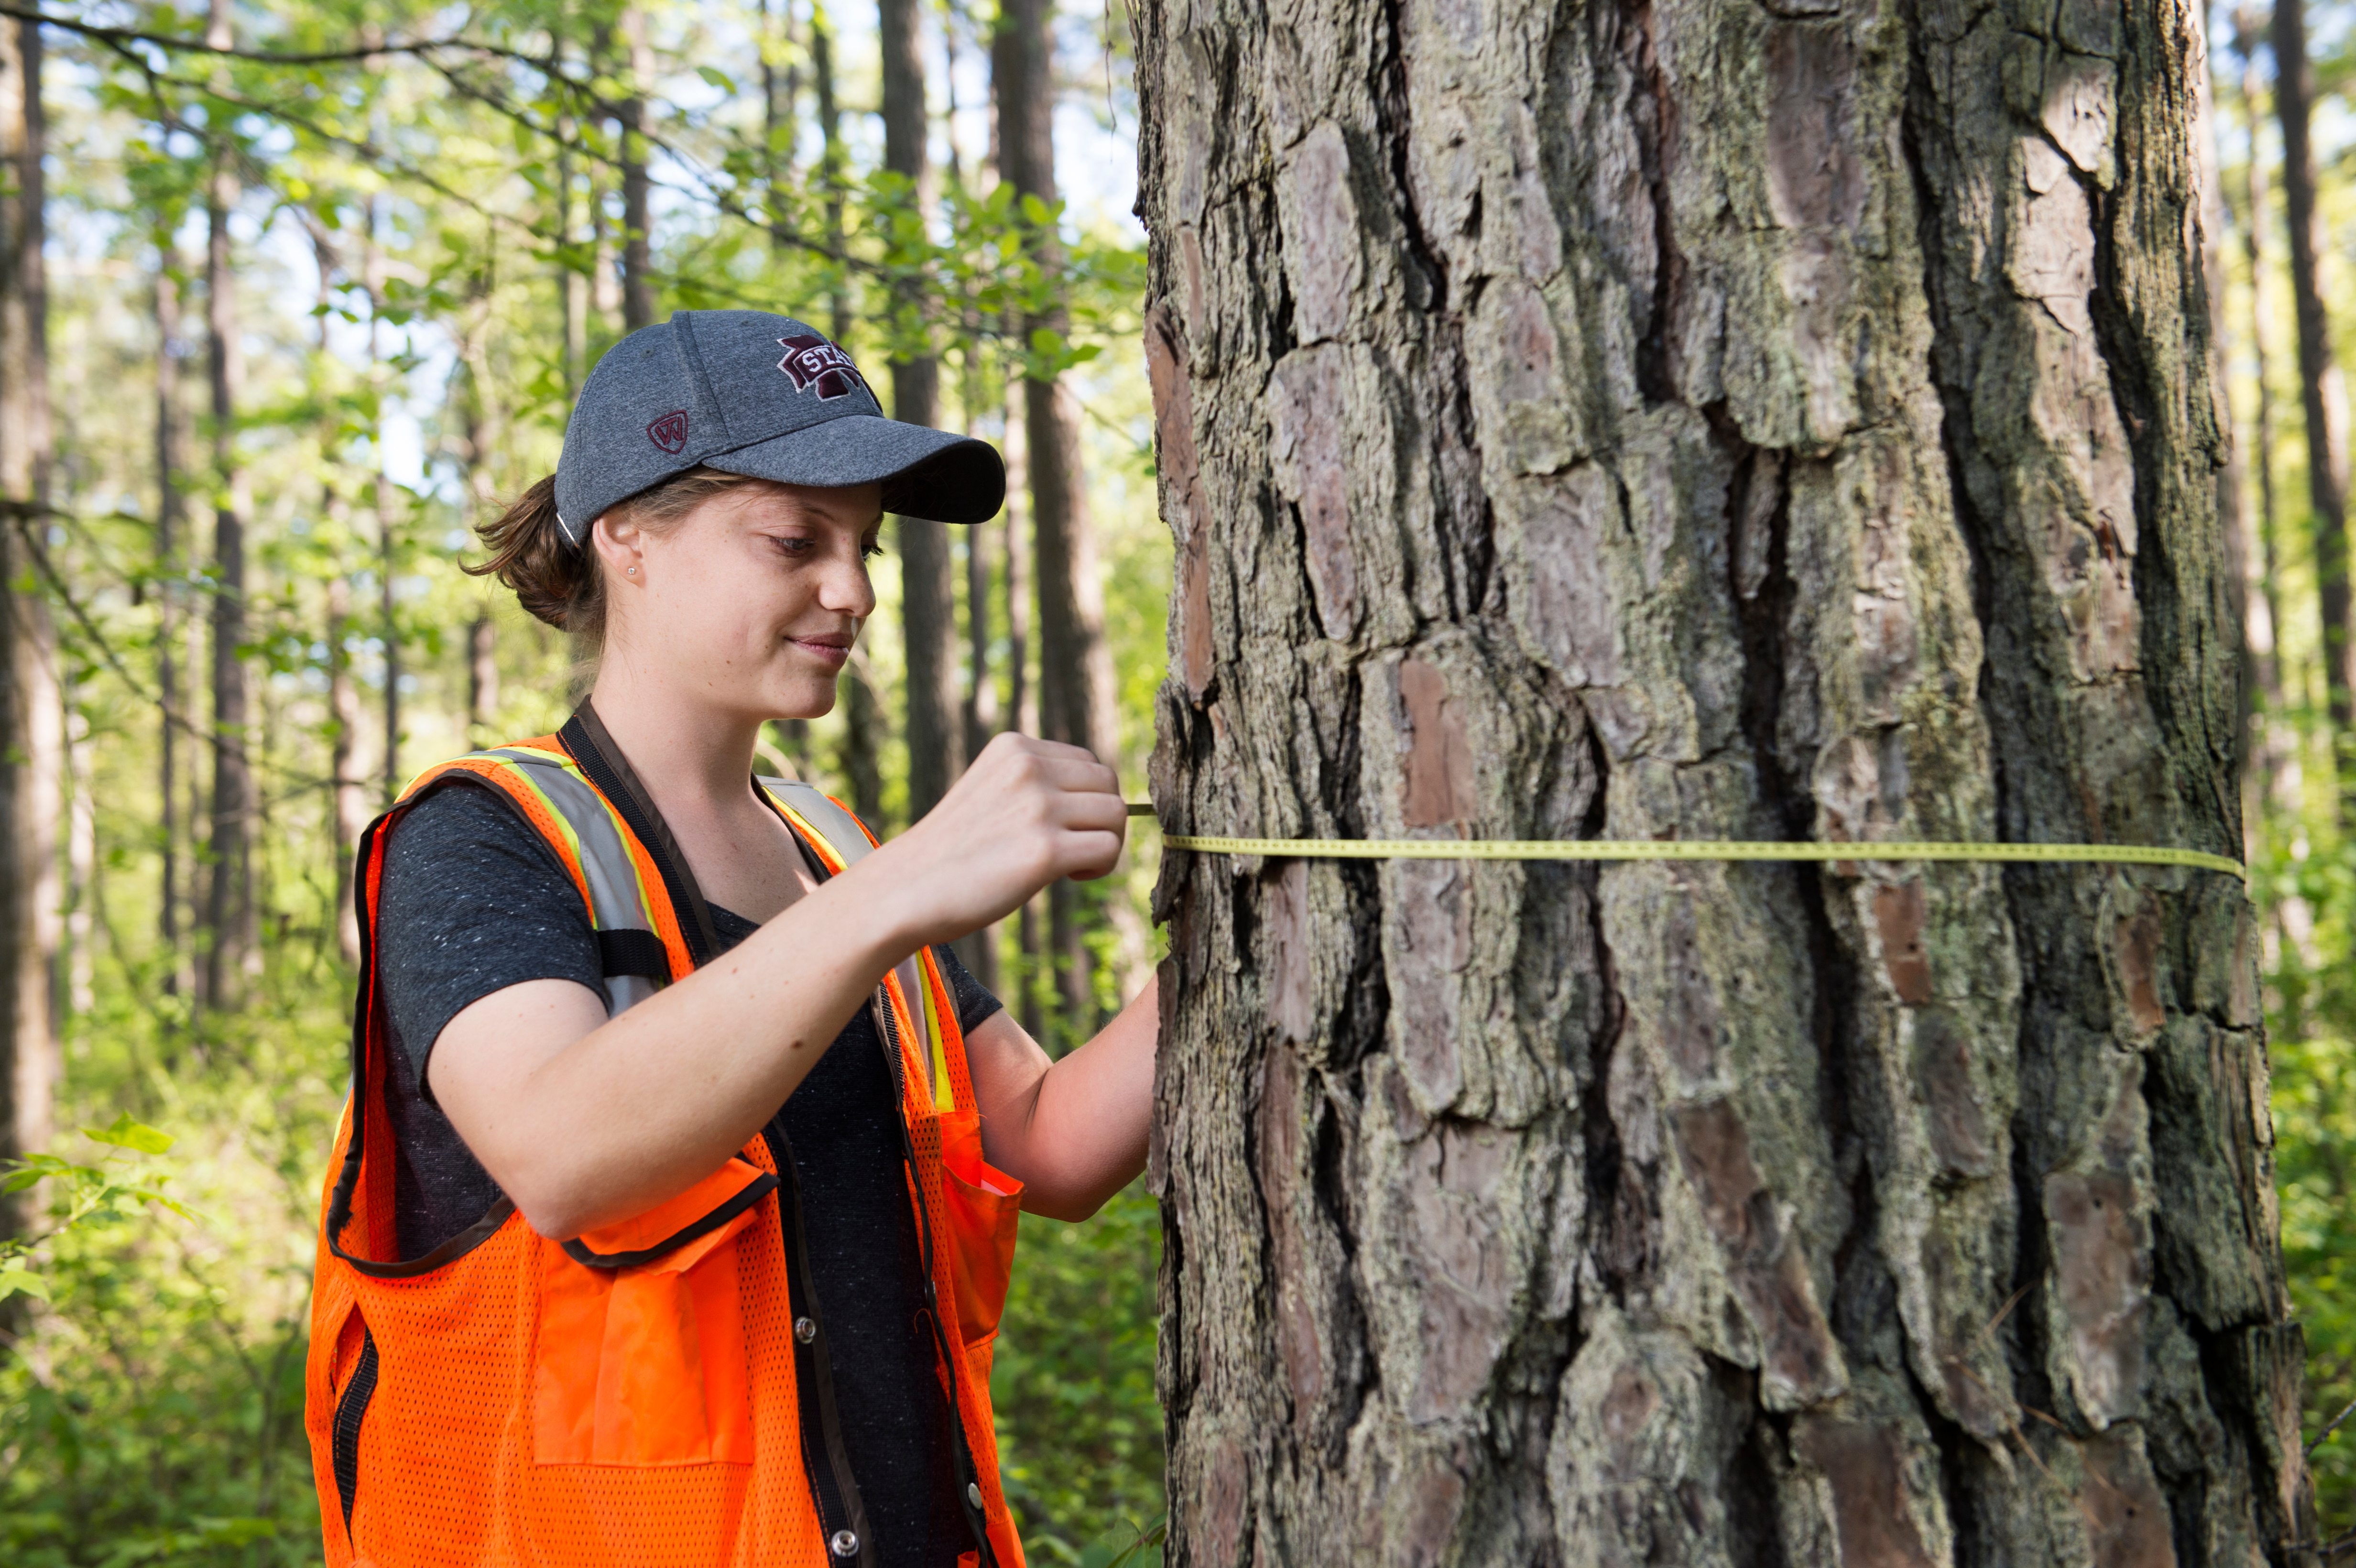 Samantha Seamon measuring tree